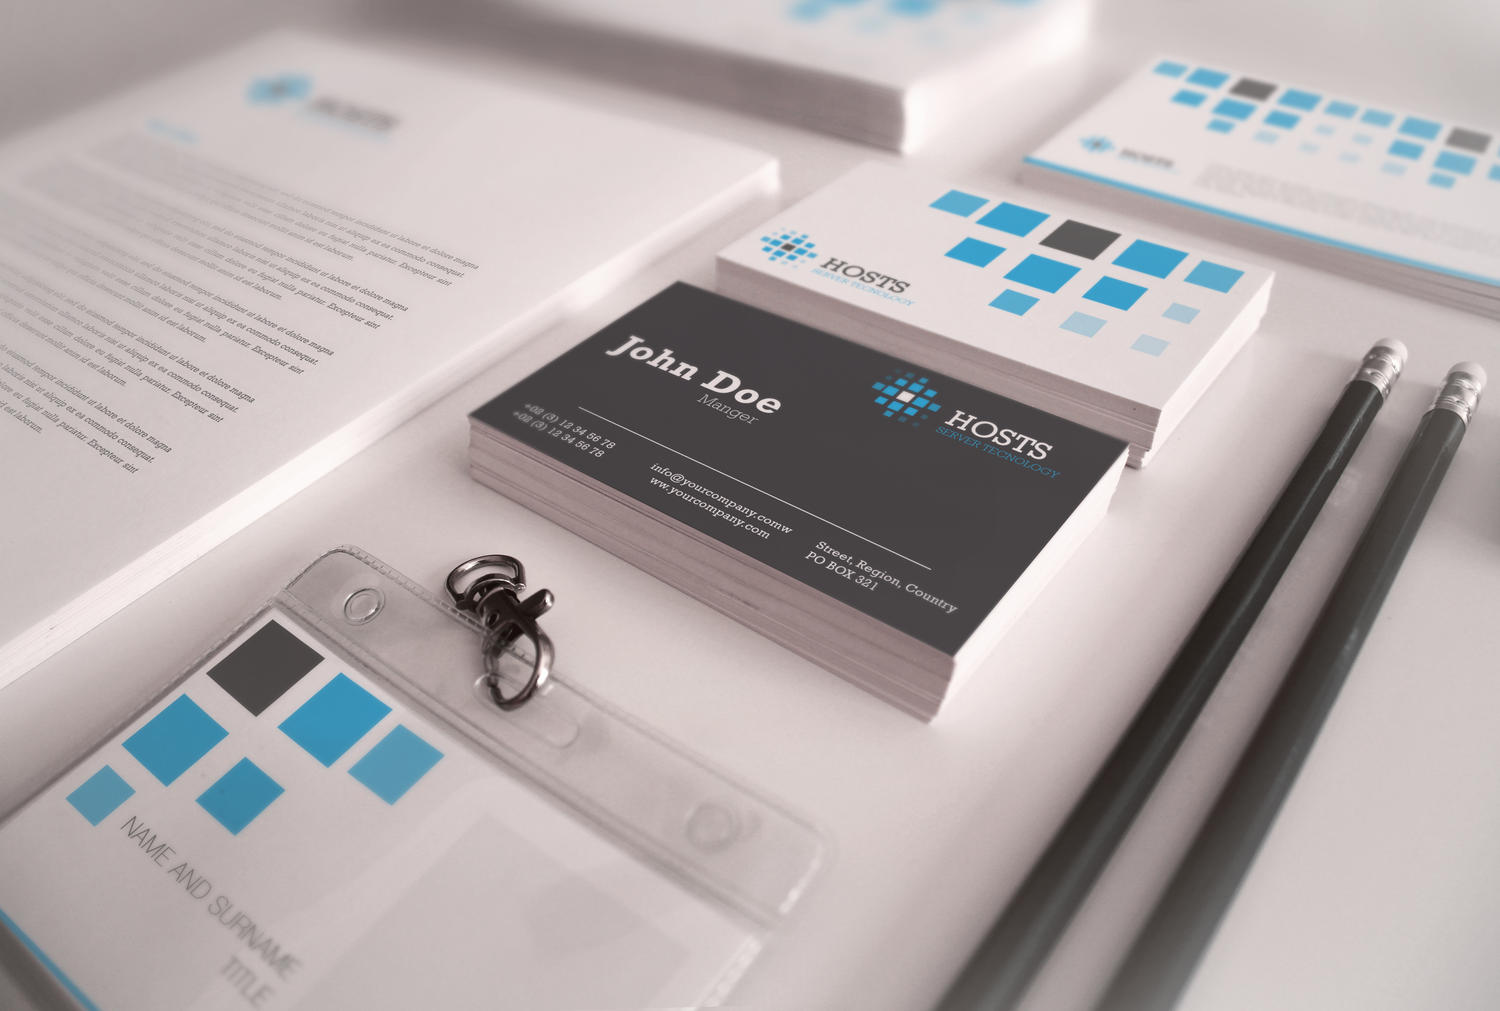 Corporate Identity Design Service by Unicogfx - 5106